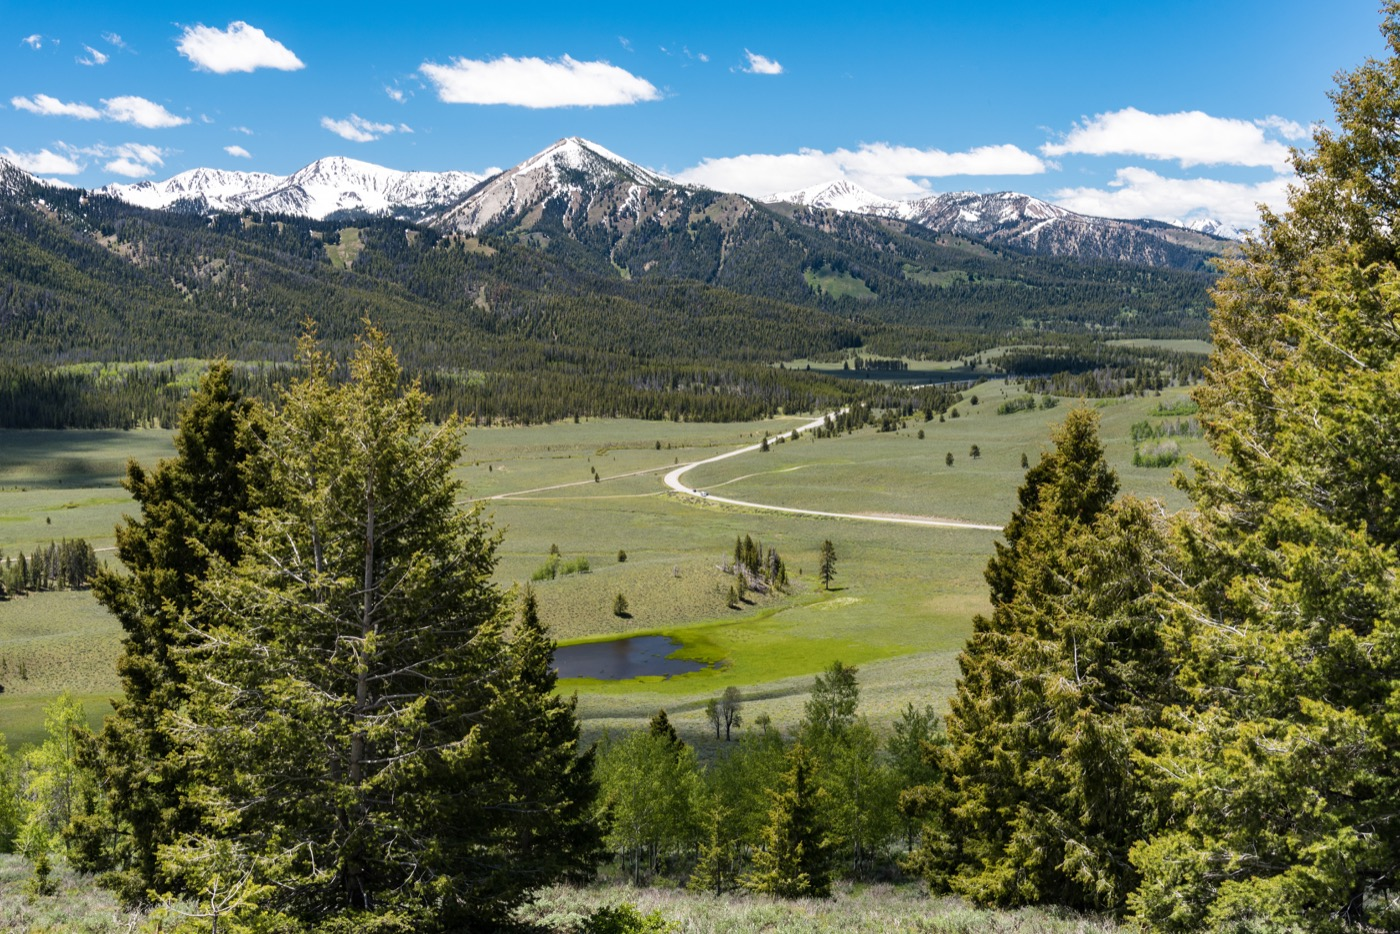 Overlook on the Sawtooth Scenic Byway, Idaho